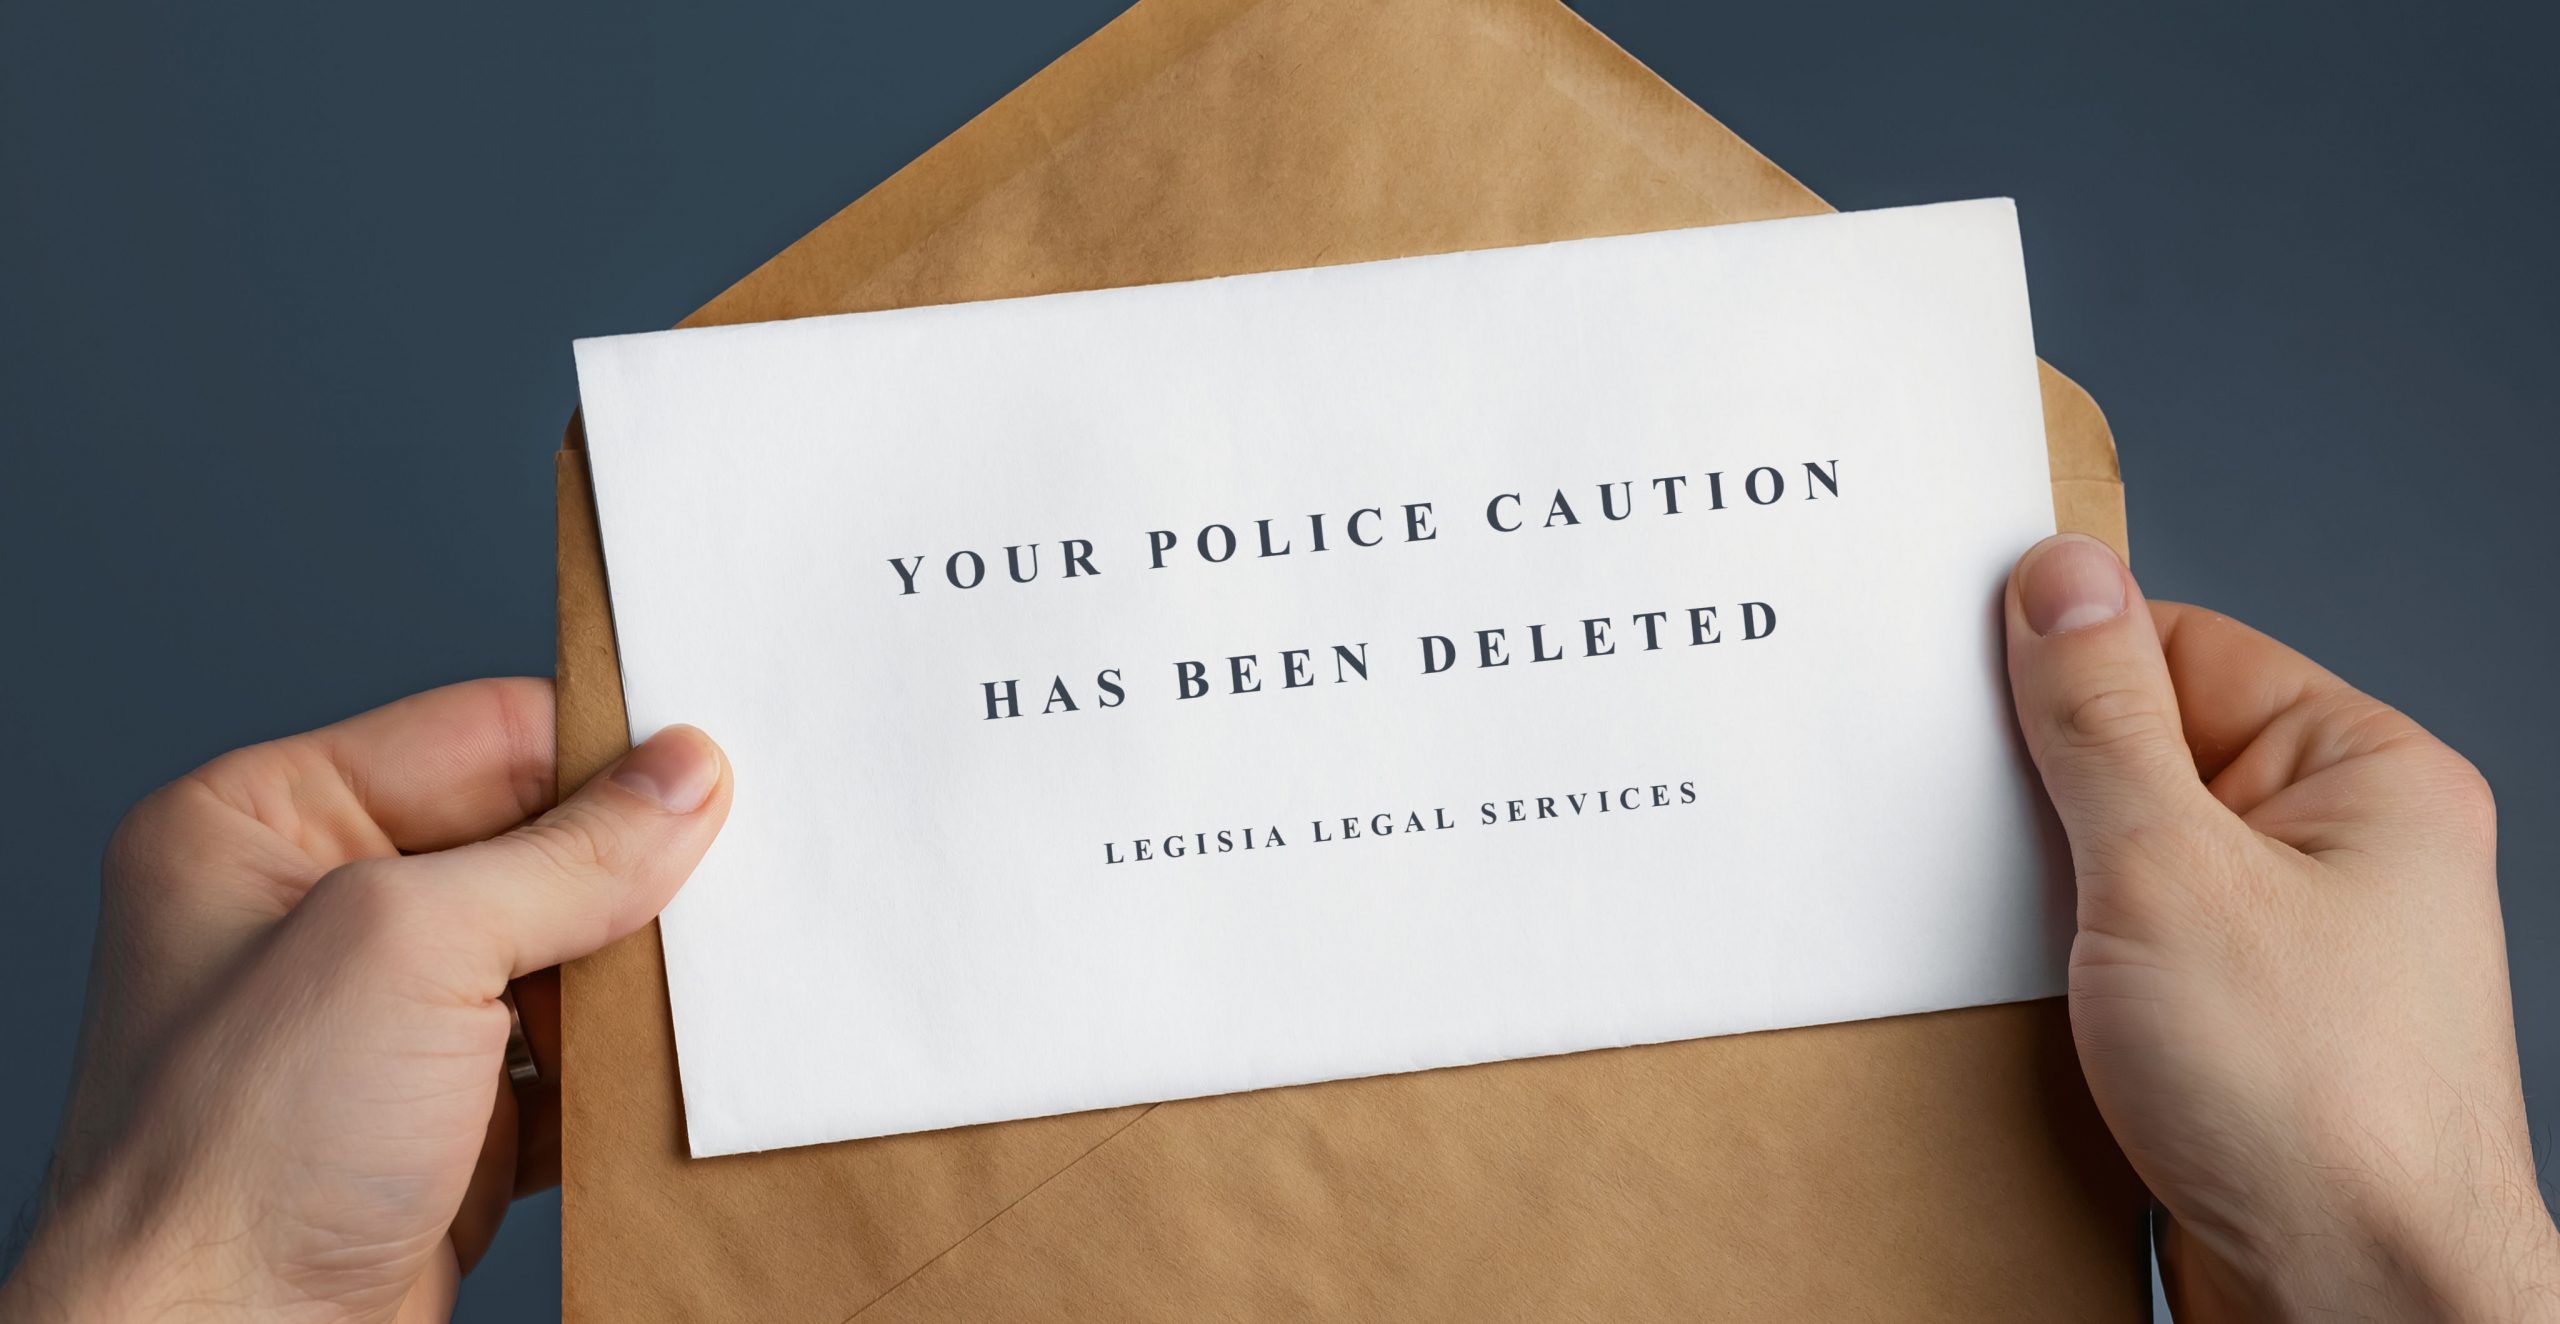 Police Caution Removal